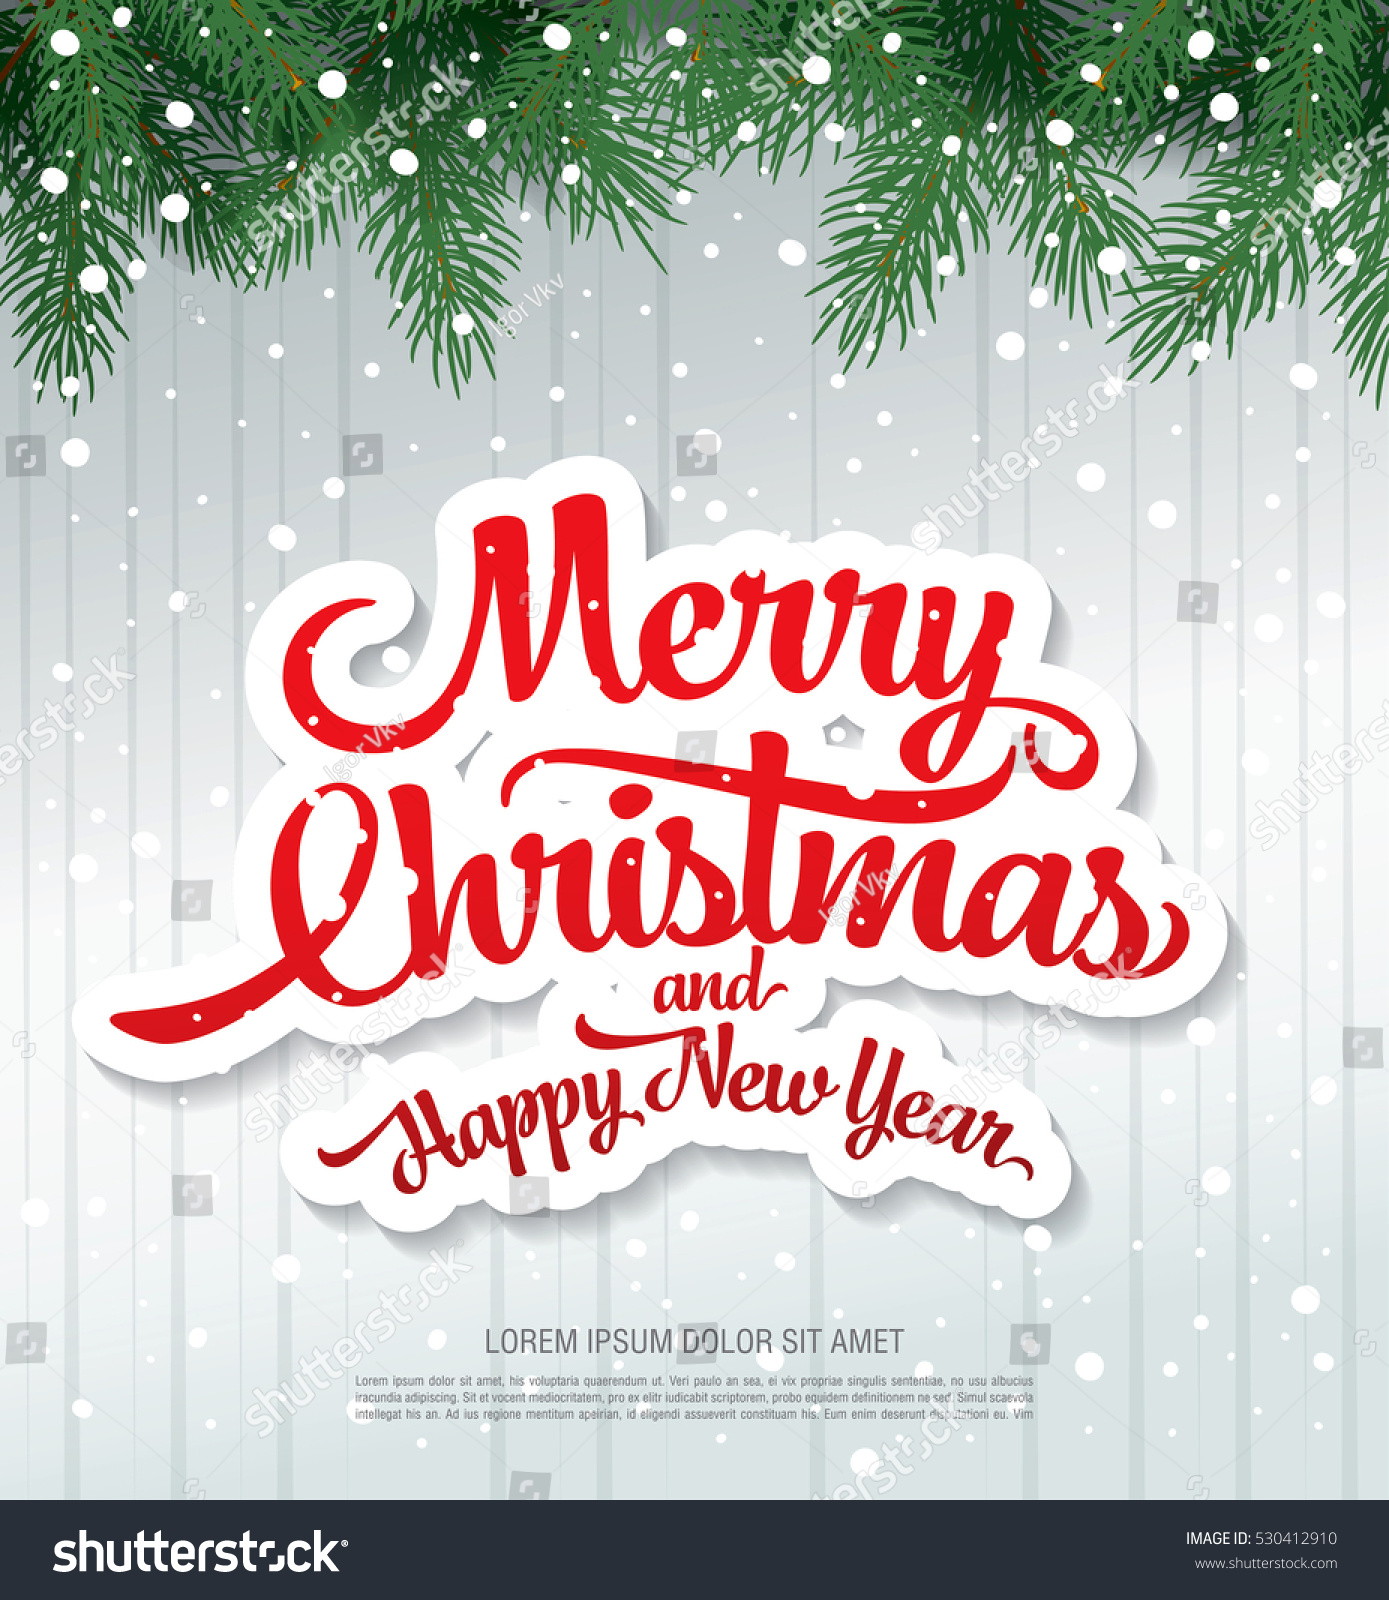 Christmas greeting card merry christmas happy stock vector christmas greeting card merry christmas and happy new year reheart Image collections